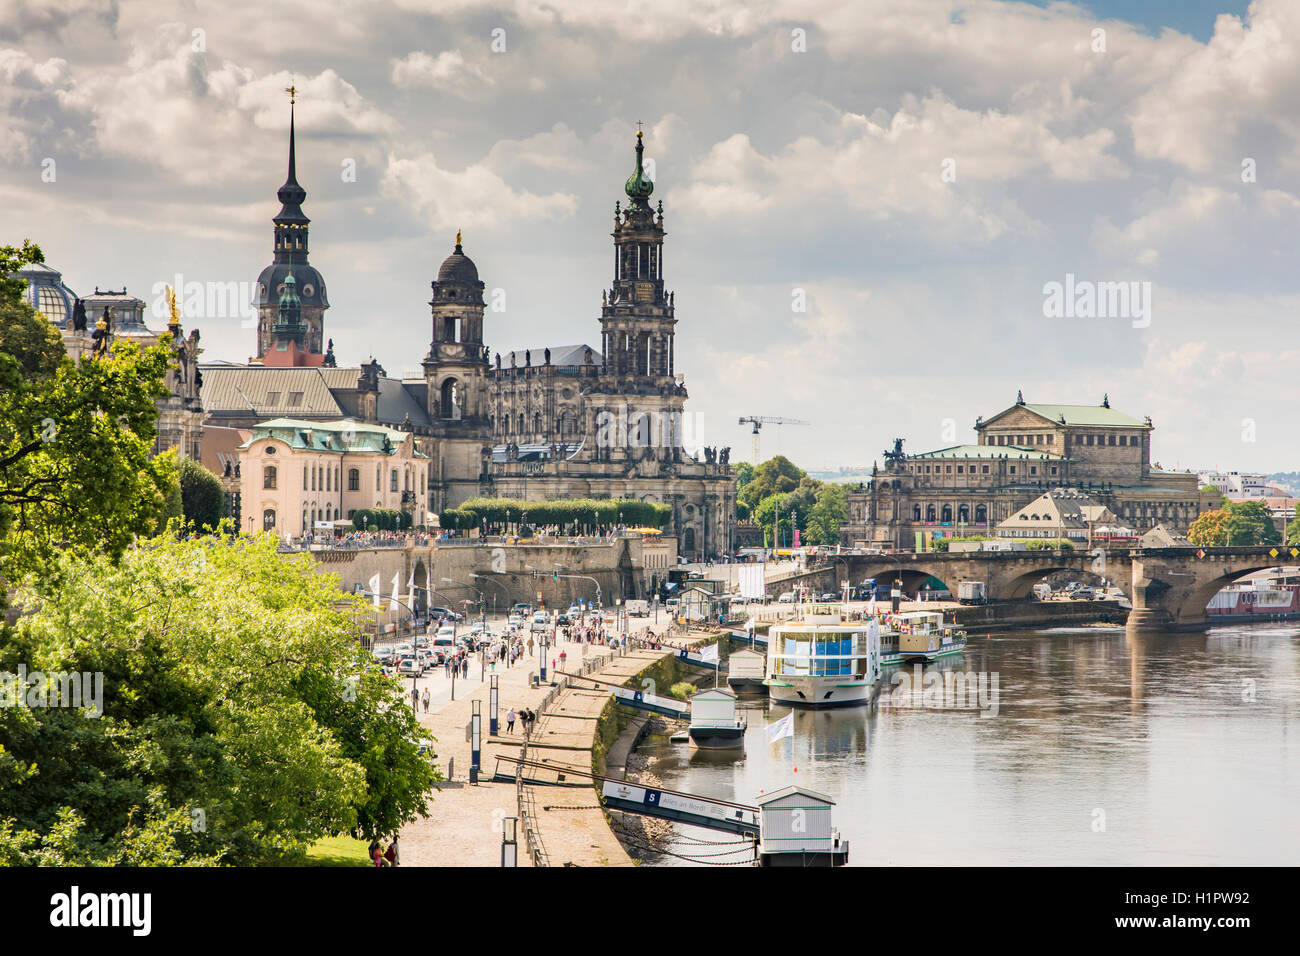 DRESDEN, GERMANY - AUGUST 22: Tourists in the historic center of Dresden, Germany on August 22, 2016. - Stock Image